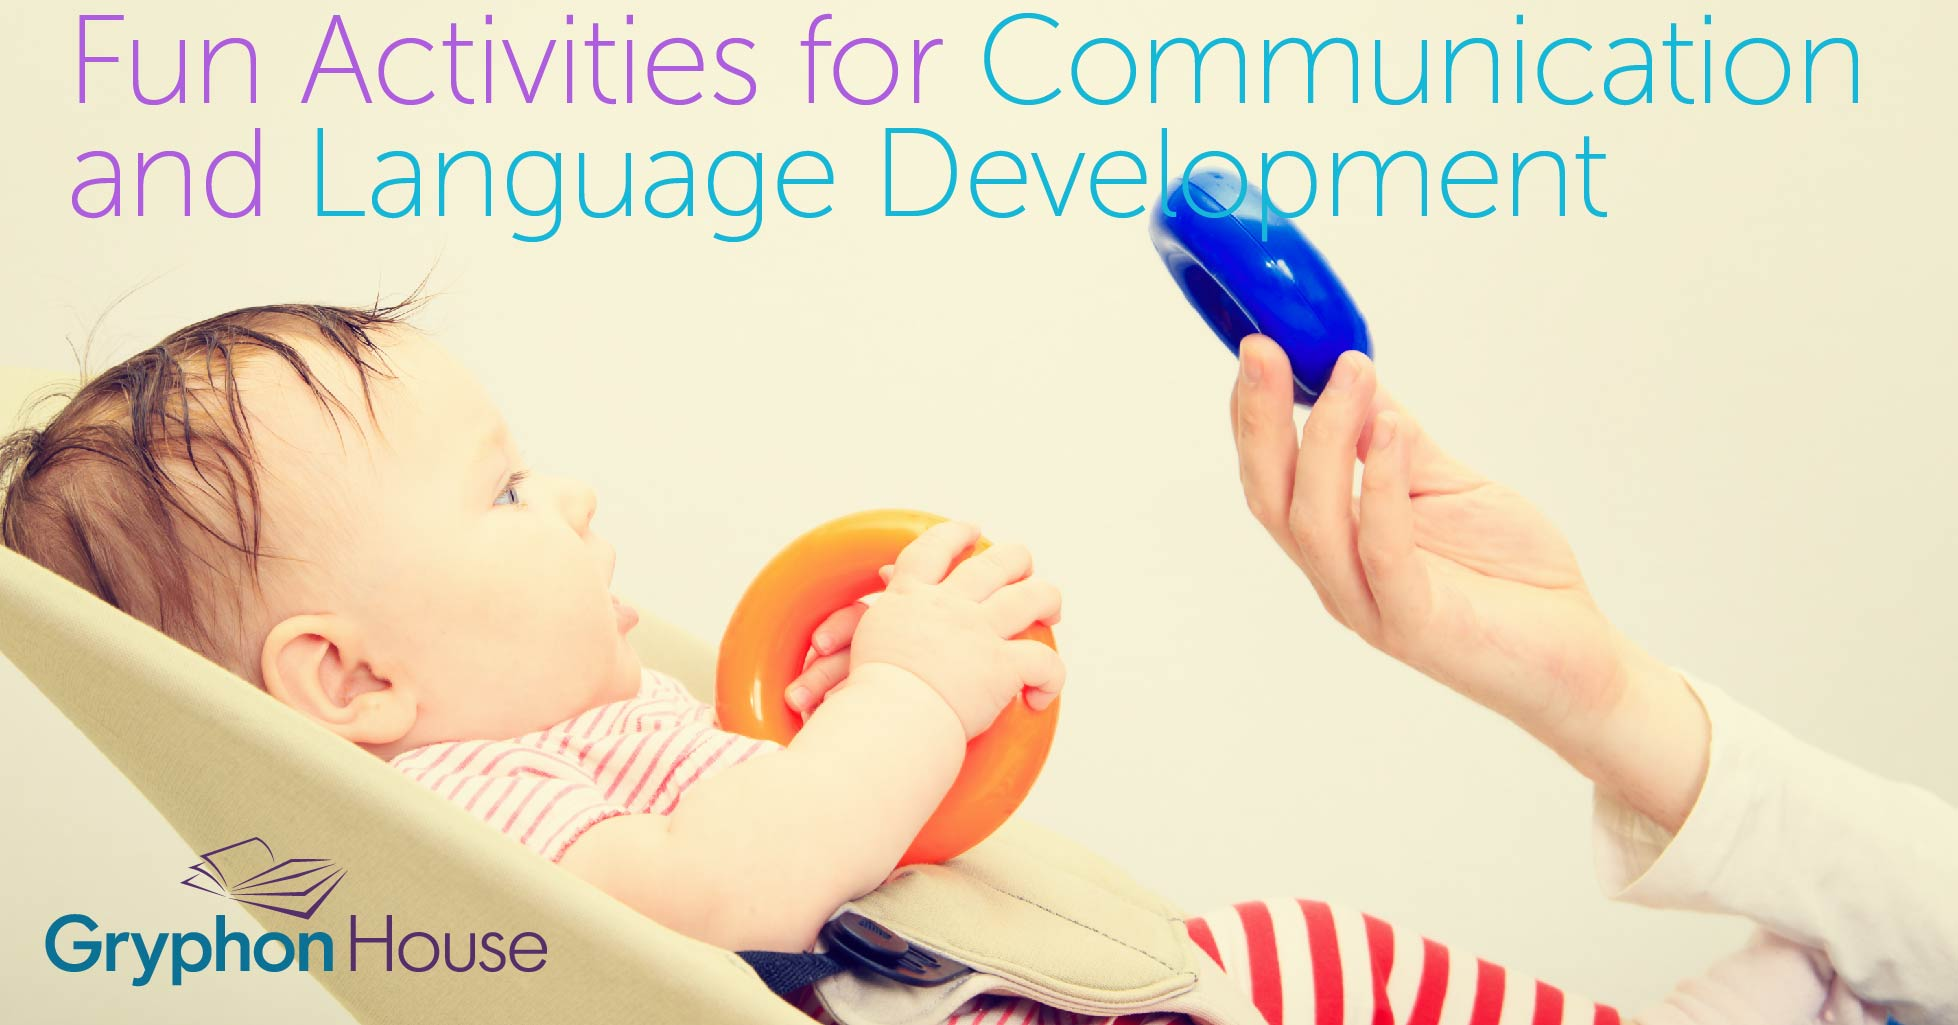 Fun Activities for Communication and Language Development | Gryphon House